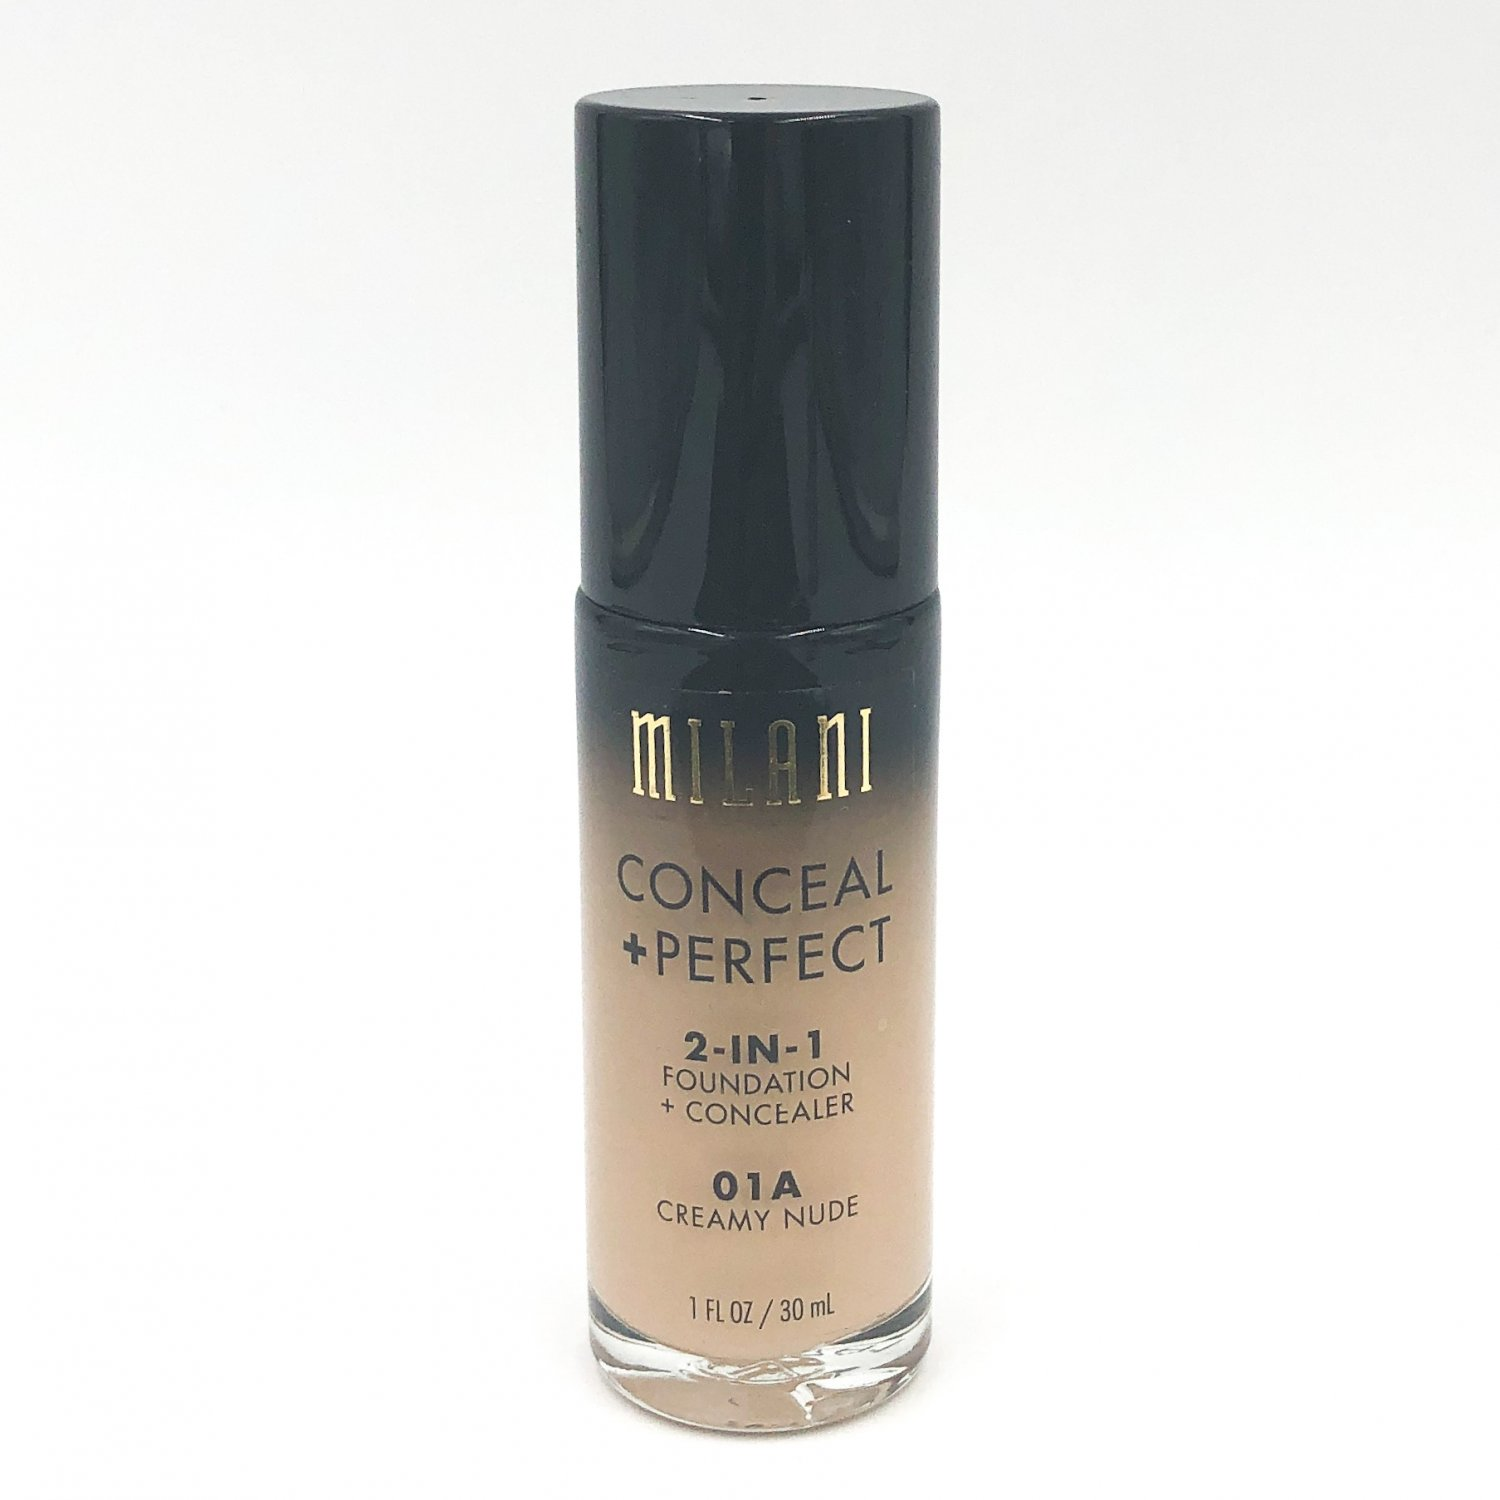 Milani Conceal + Perfect 2-in-1 Foundation + Concealer 01A Creamy Nude